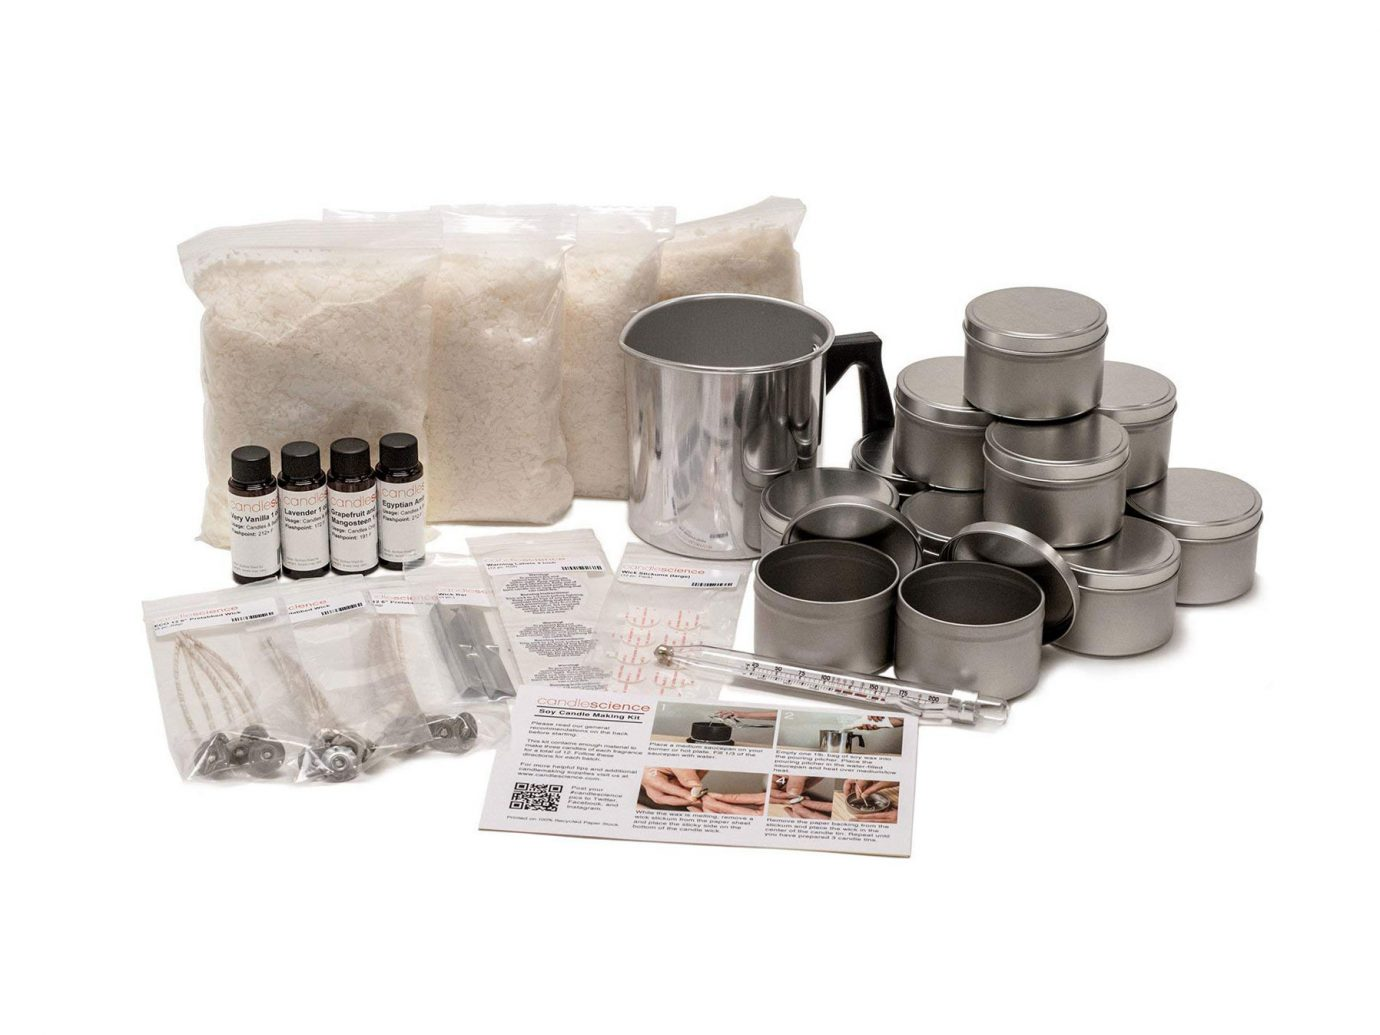 Buy CandleScience Soy Candle Making Starter Kit on Amazon